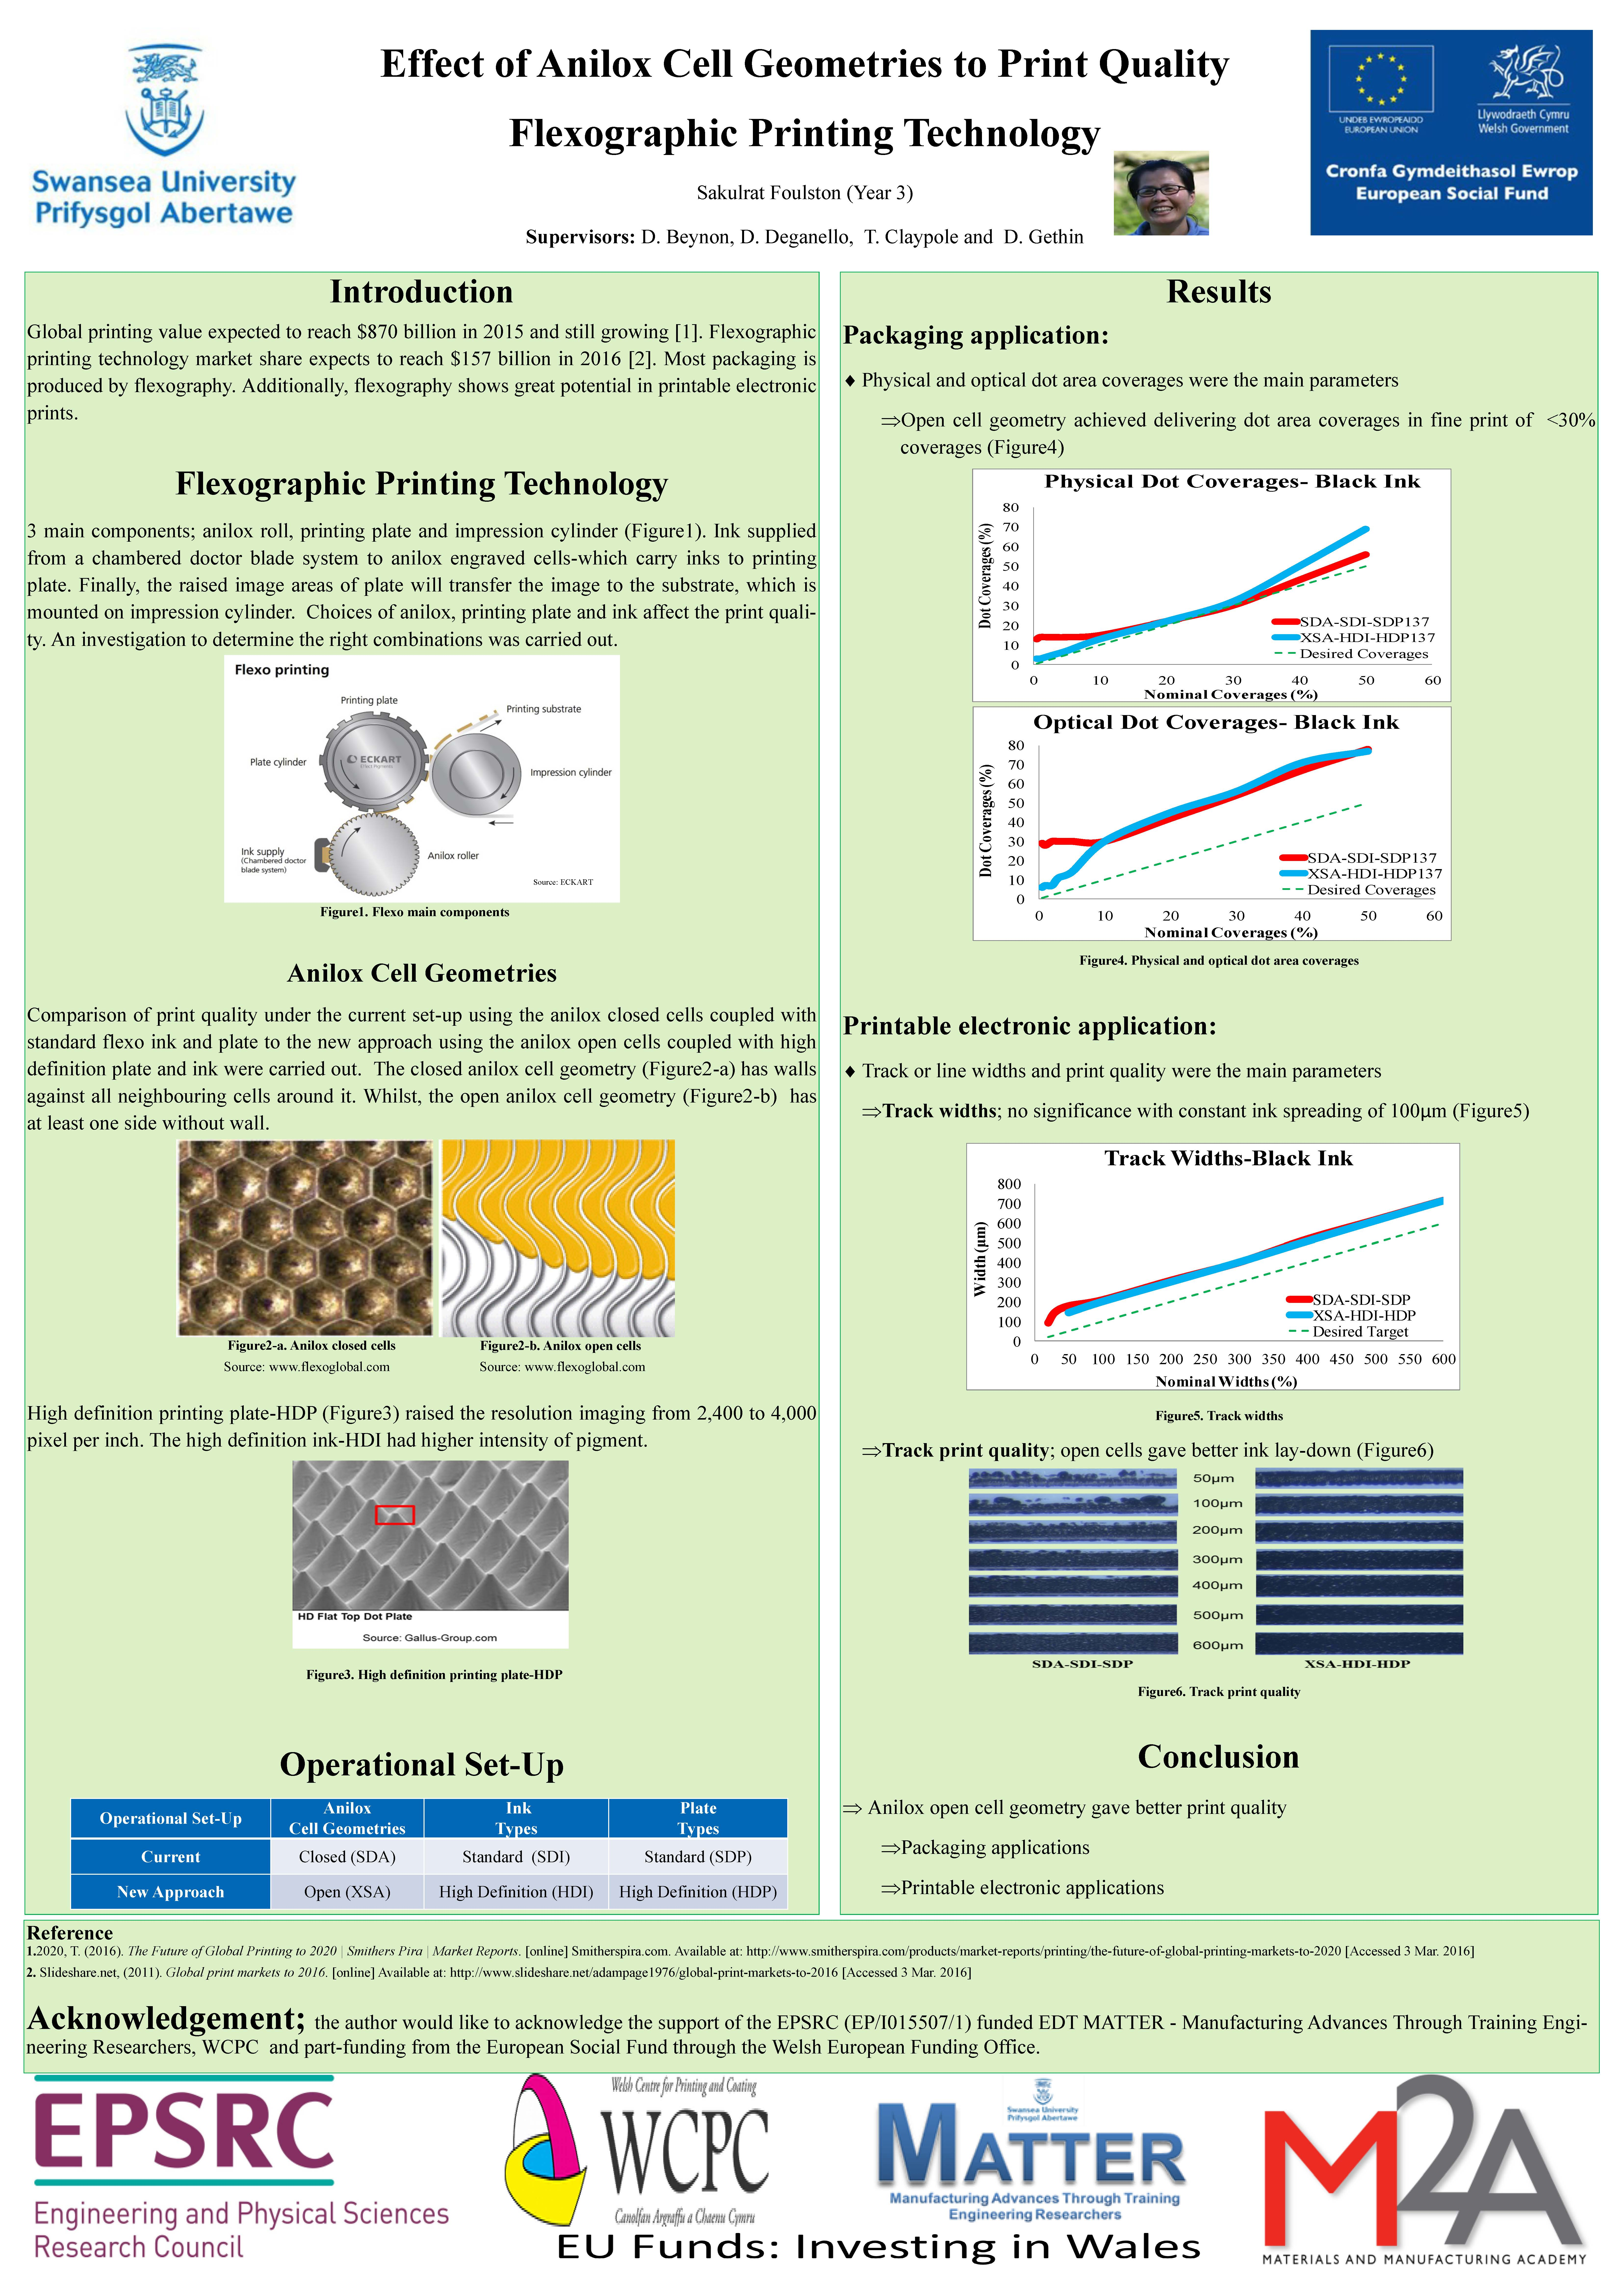 Effect of Anilox Cell Geometries to Print Quality Flexographic Printing Technology